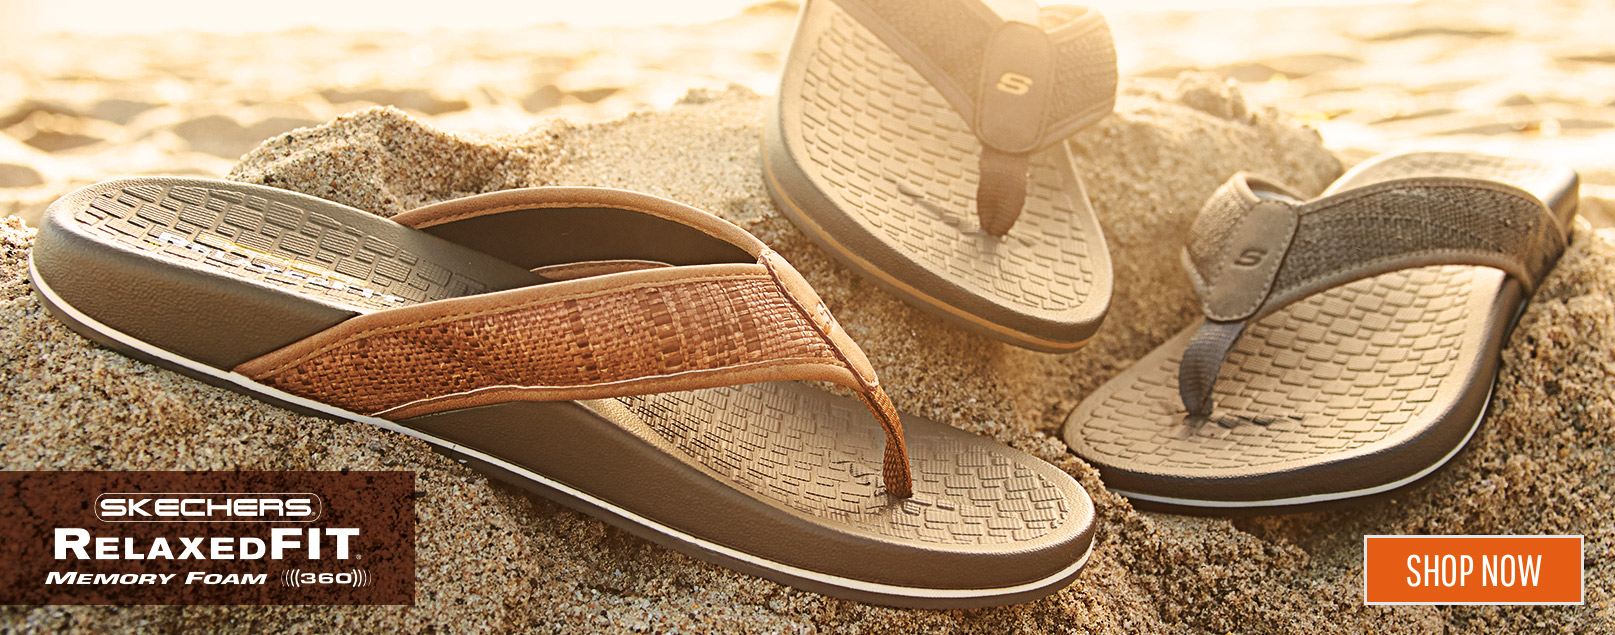 46bcd9aea1d3 Stay relaxed all season long with the Skechers Relaxed Fit sandal  collection. From flip flops